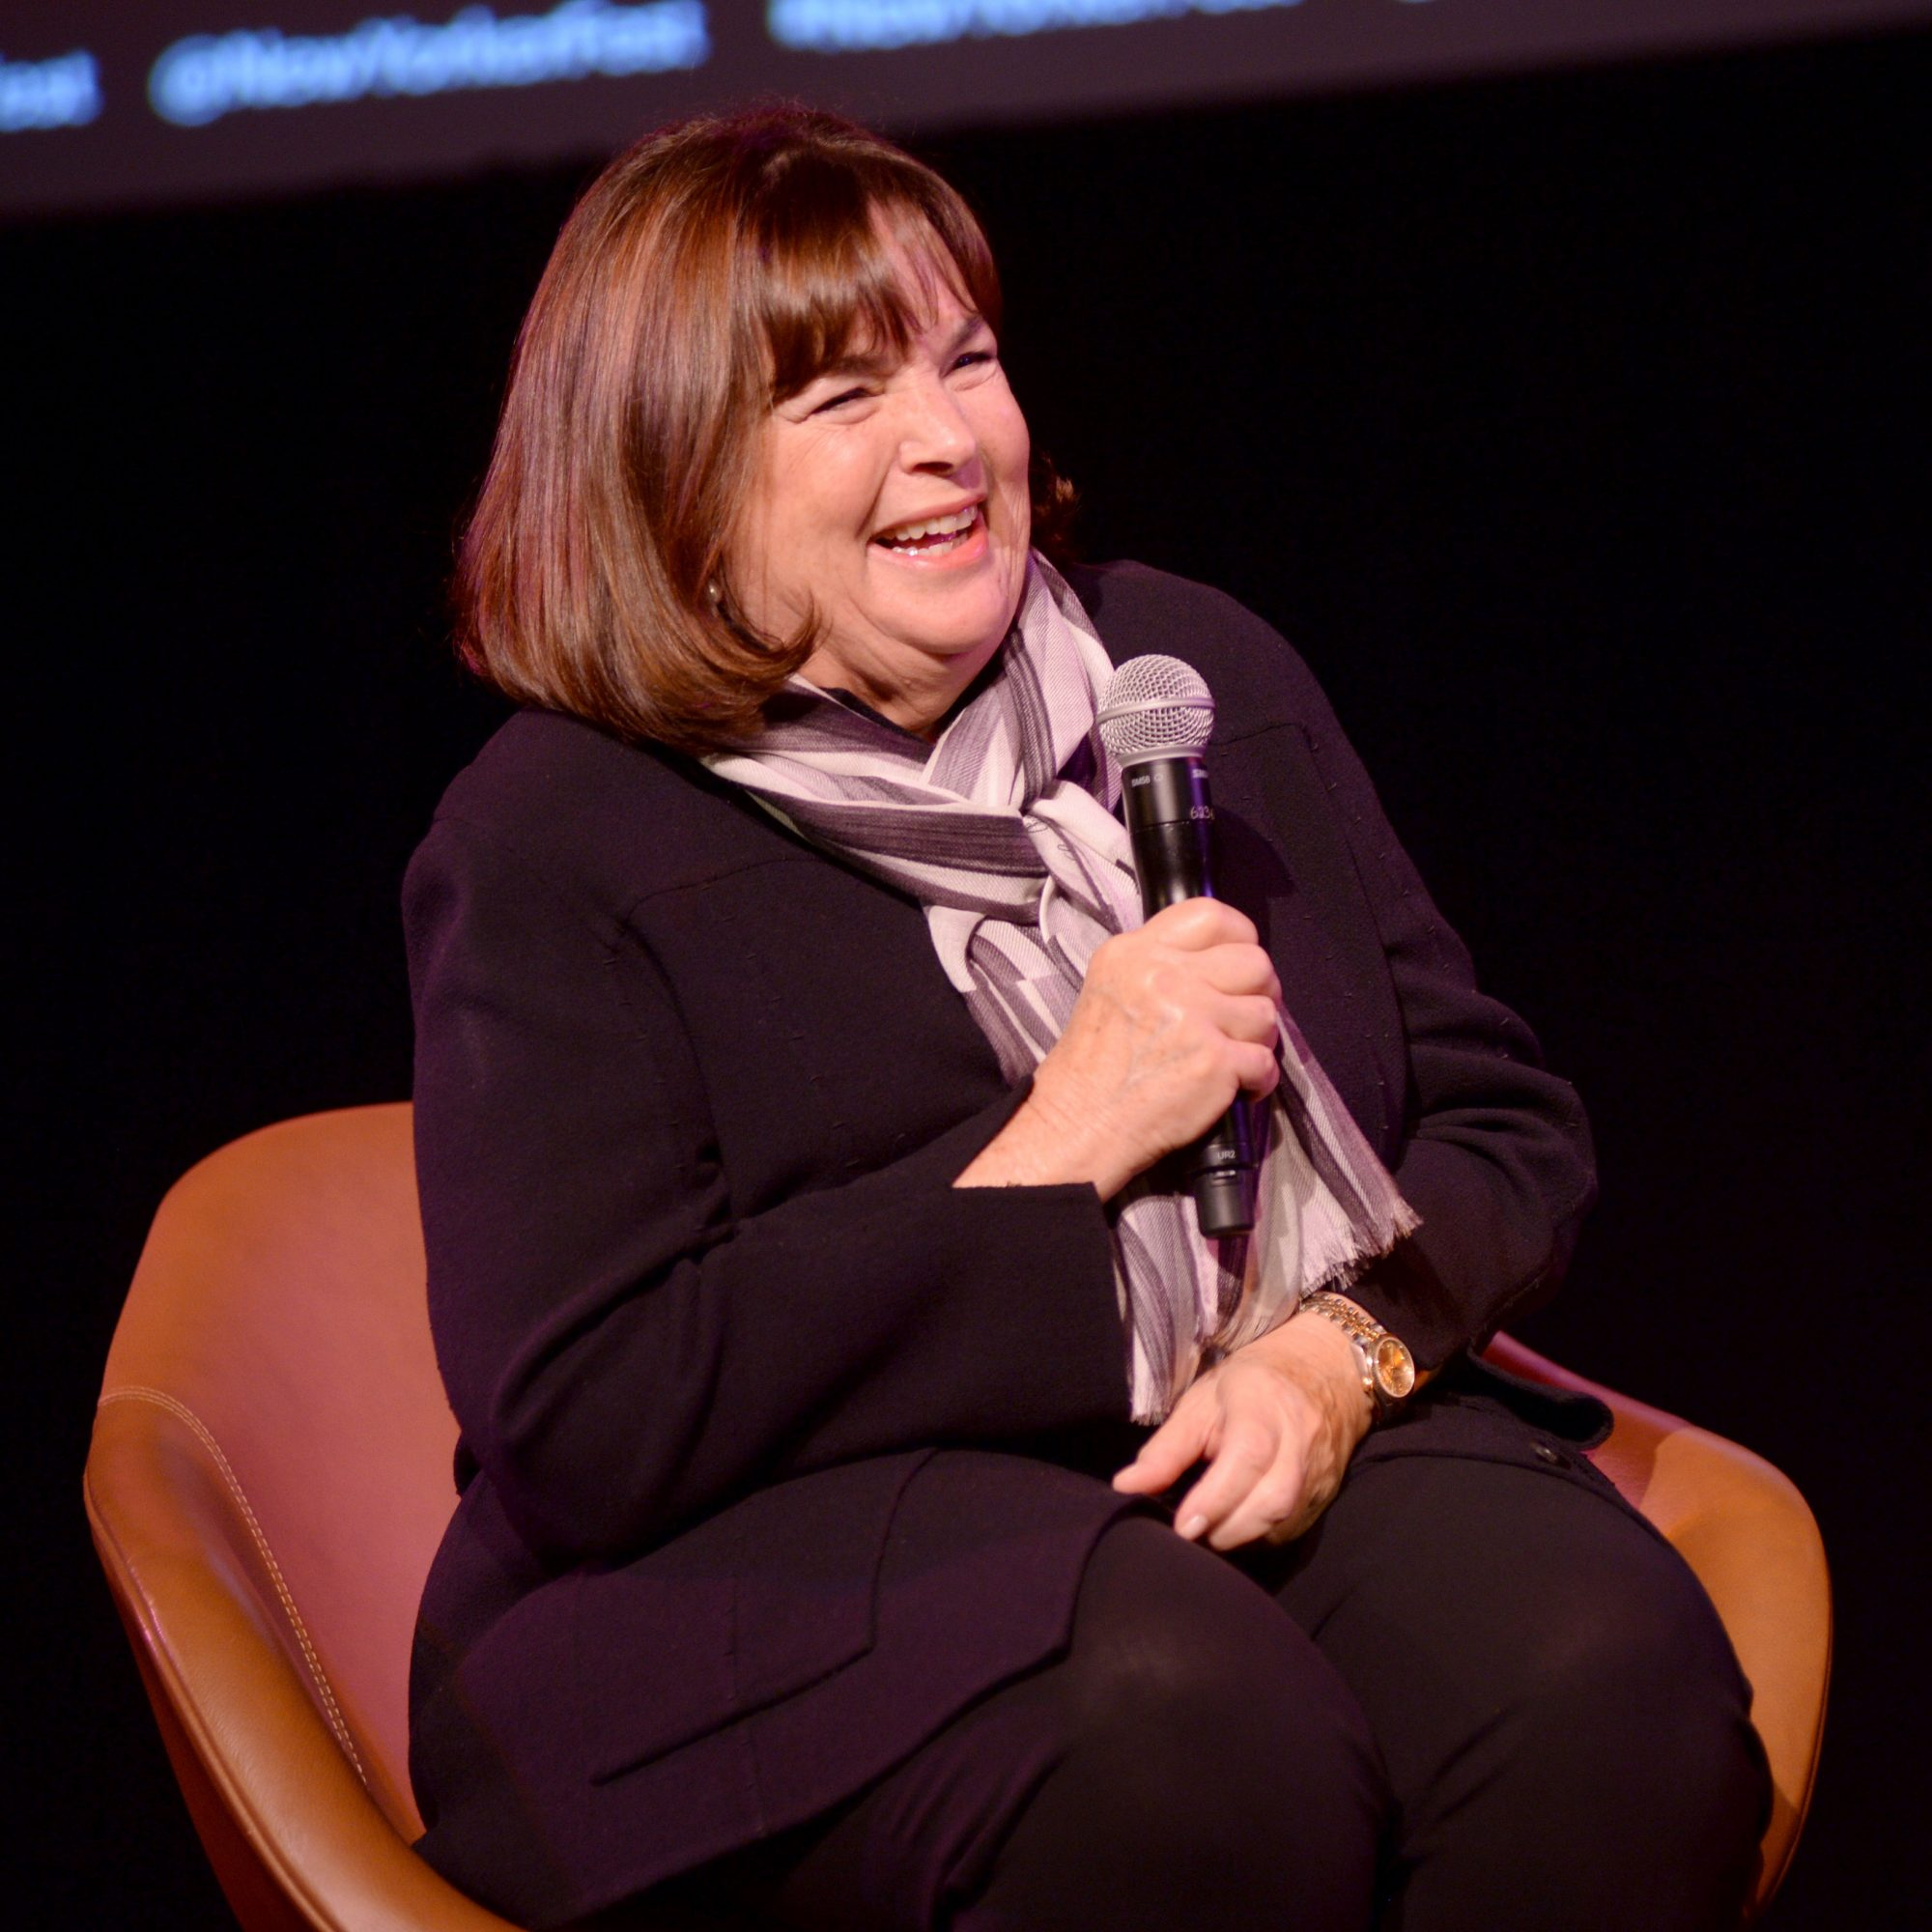 Ina Garten sitting in a chair